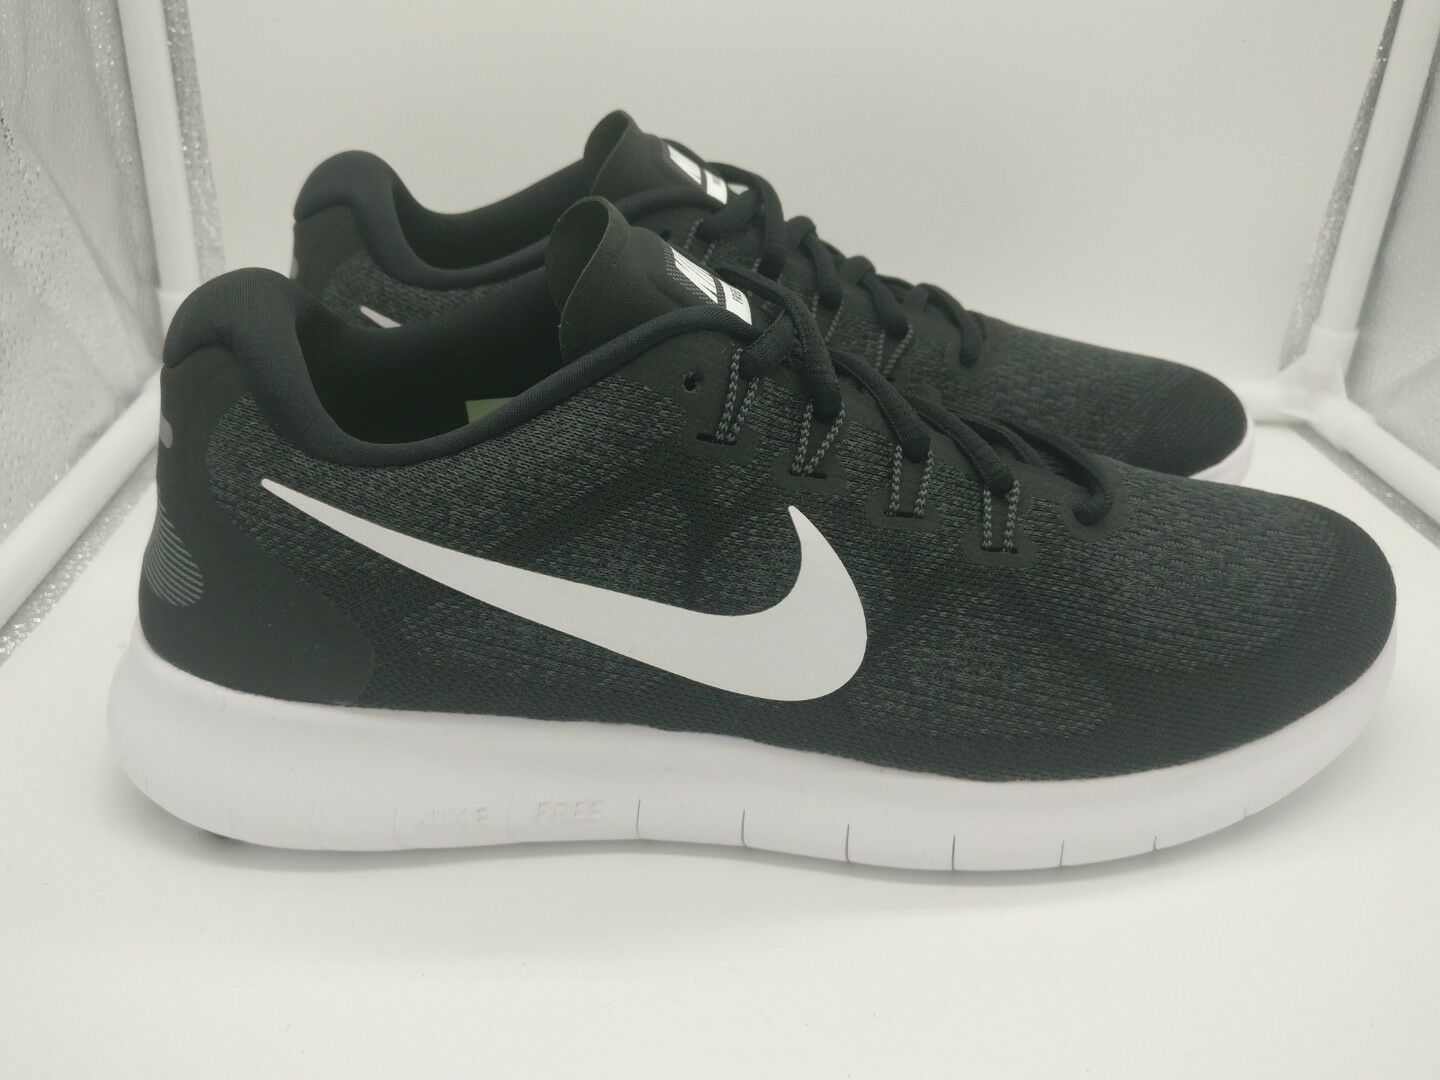 Zapatos casuales salvajes Nike RN 2017 ejecutar Reino Unido 8 Free Negro Blanco Gris Oscuro 880839001